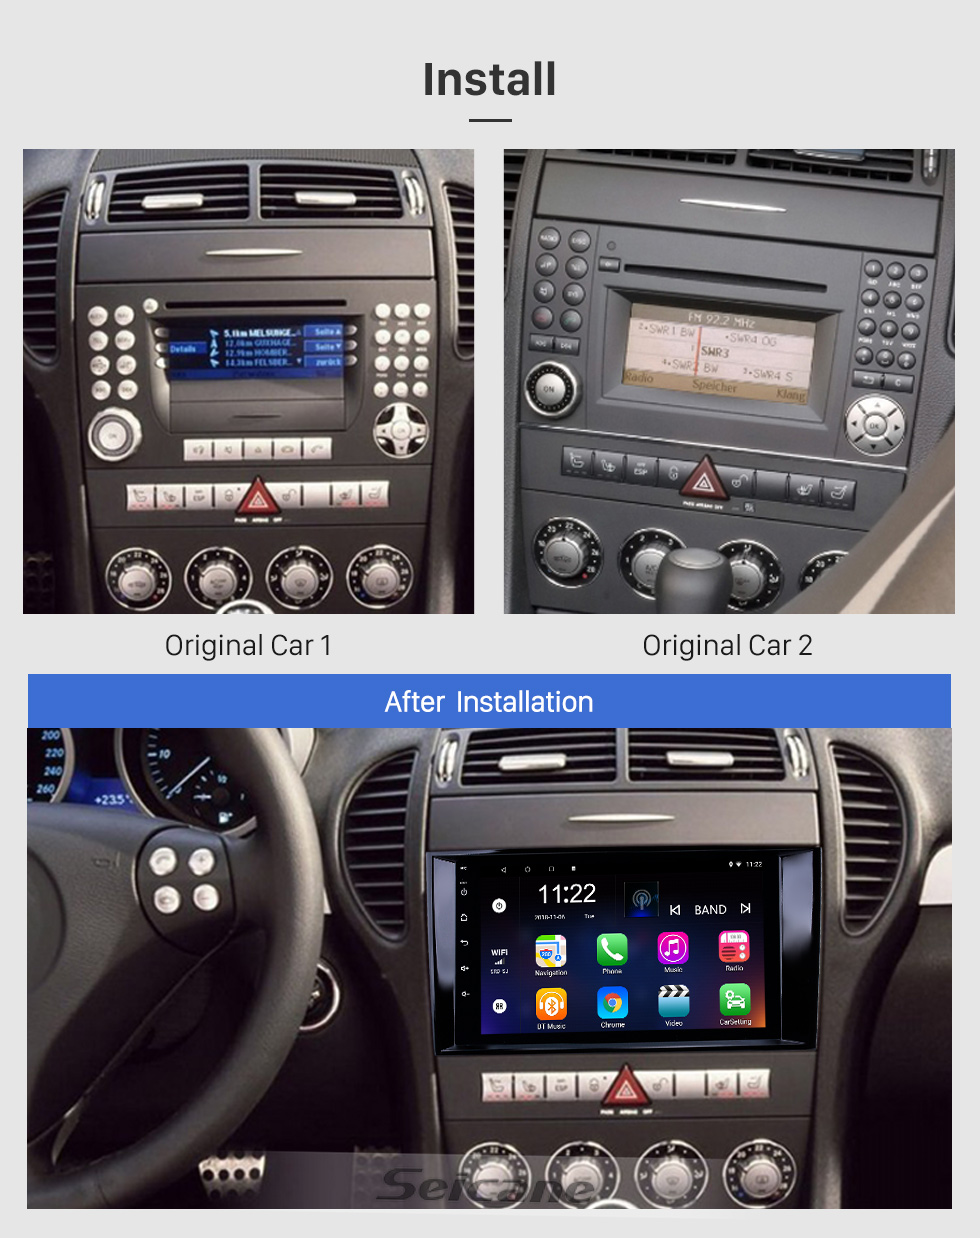 Seicane 8 inch Android 8.1 HD Touchscreen GPS Navigation Radio for 2000-2011 Mercedes Benz SLK class R171 SLK200 SLK280 SLK300 with Bluetooth WIFI AUX support Carplay Mirror Link